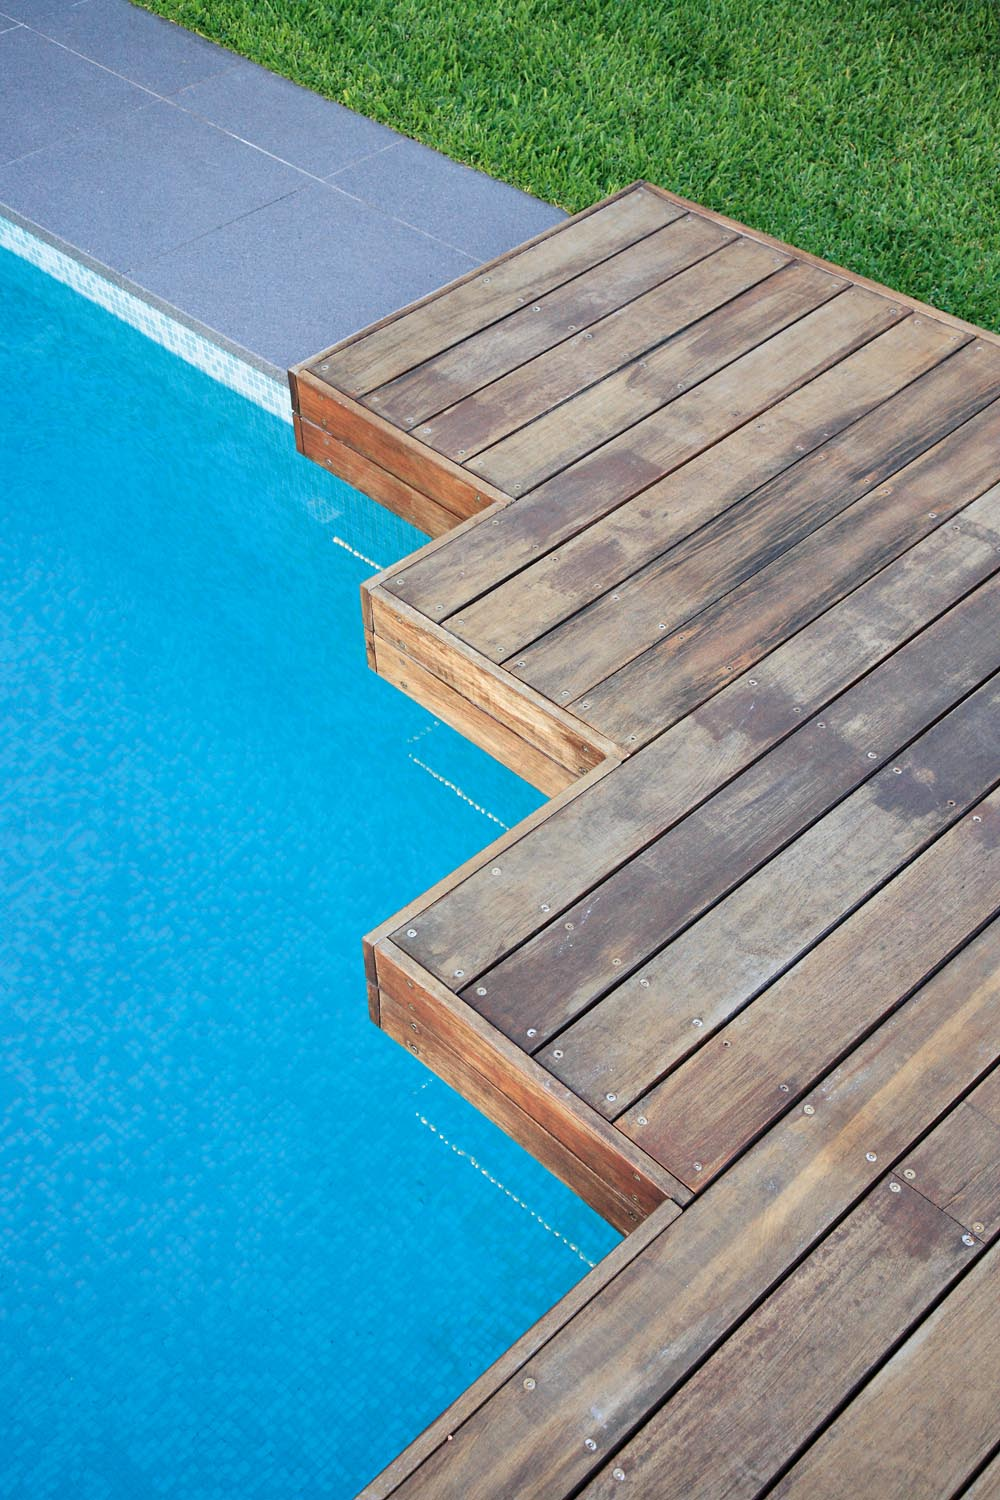 Pool corner with wooden platform and lawn